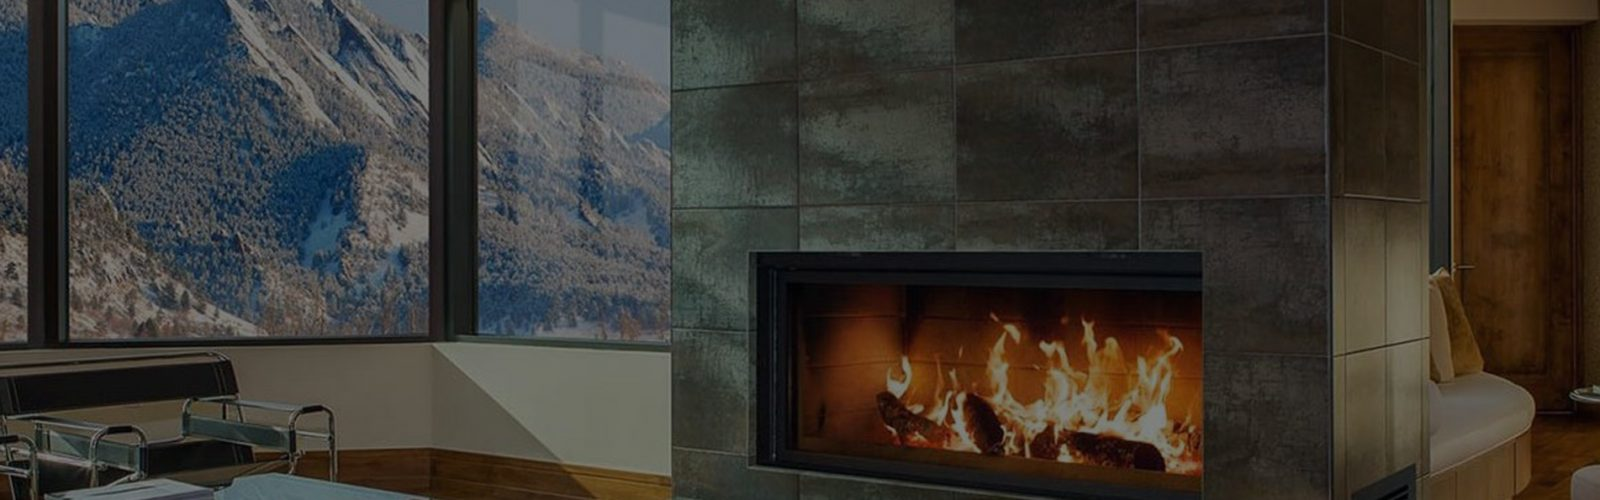 Fireplaces & Stoves, Hot Tubs, and Grills at Nick's Fireplace ...